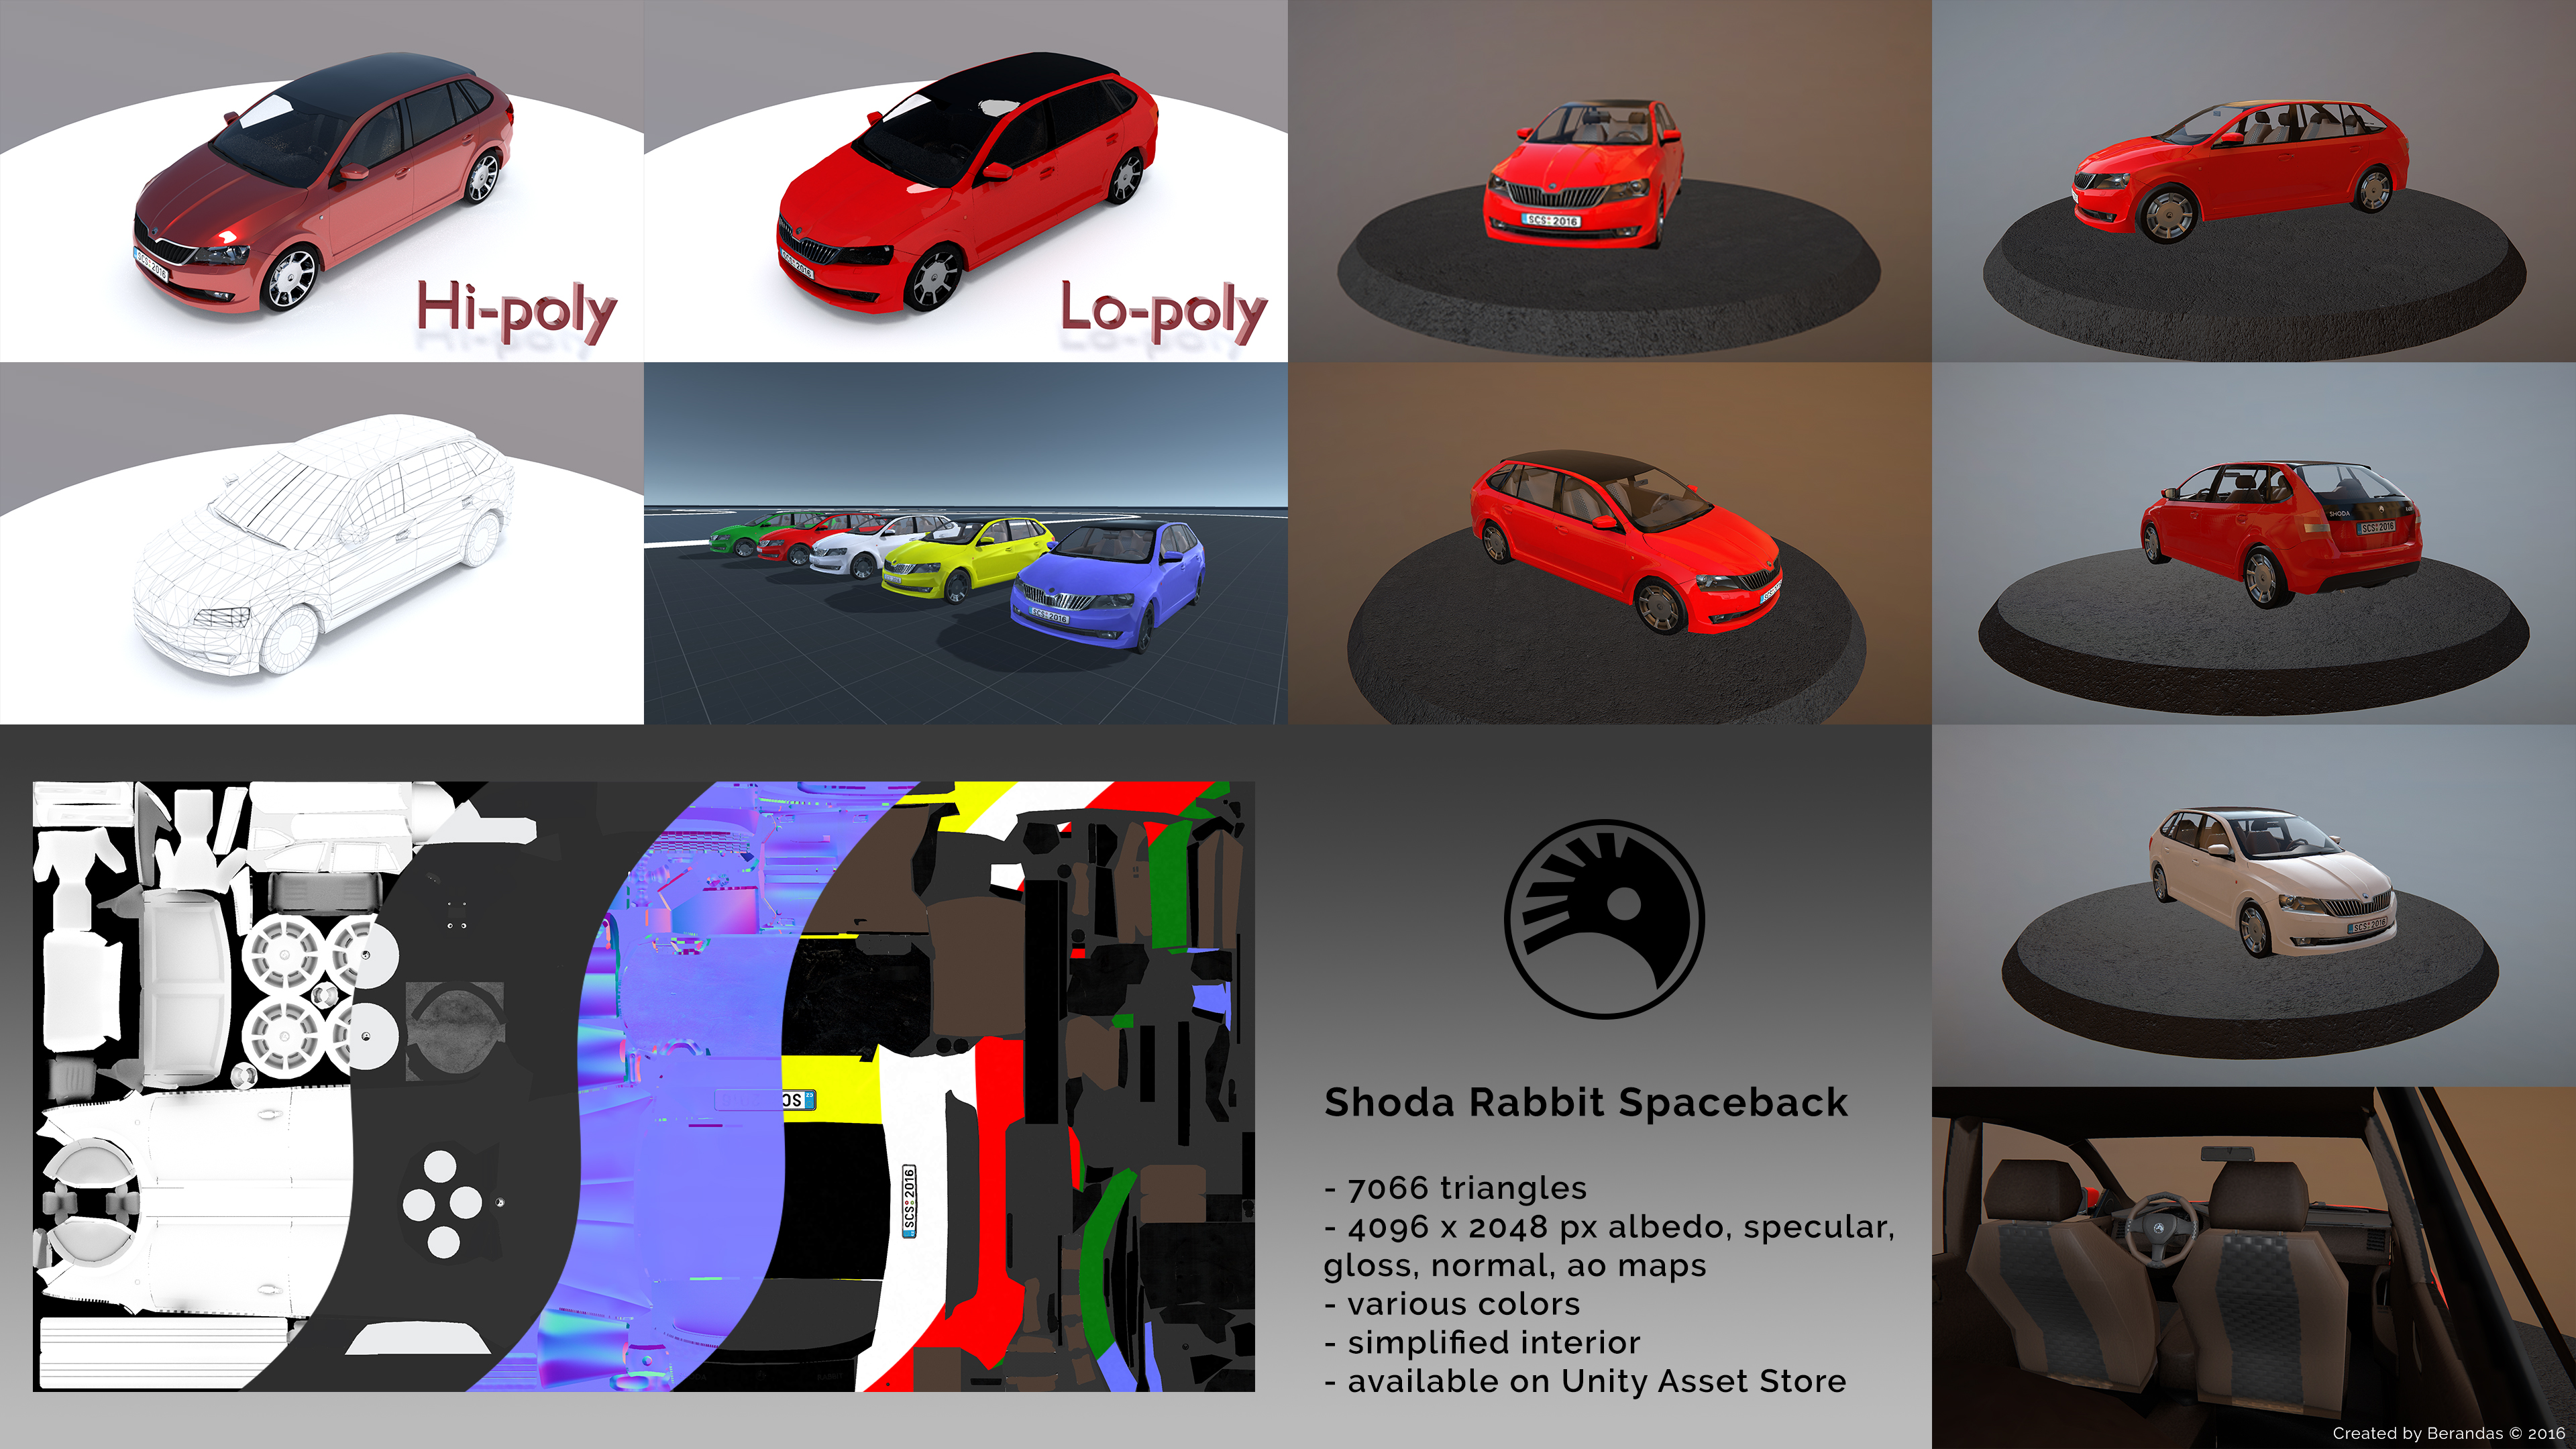 Shoda Rabbit Spaceback 3D Car by Berandas